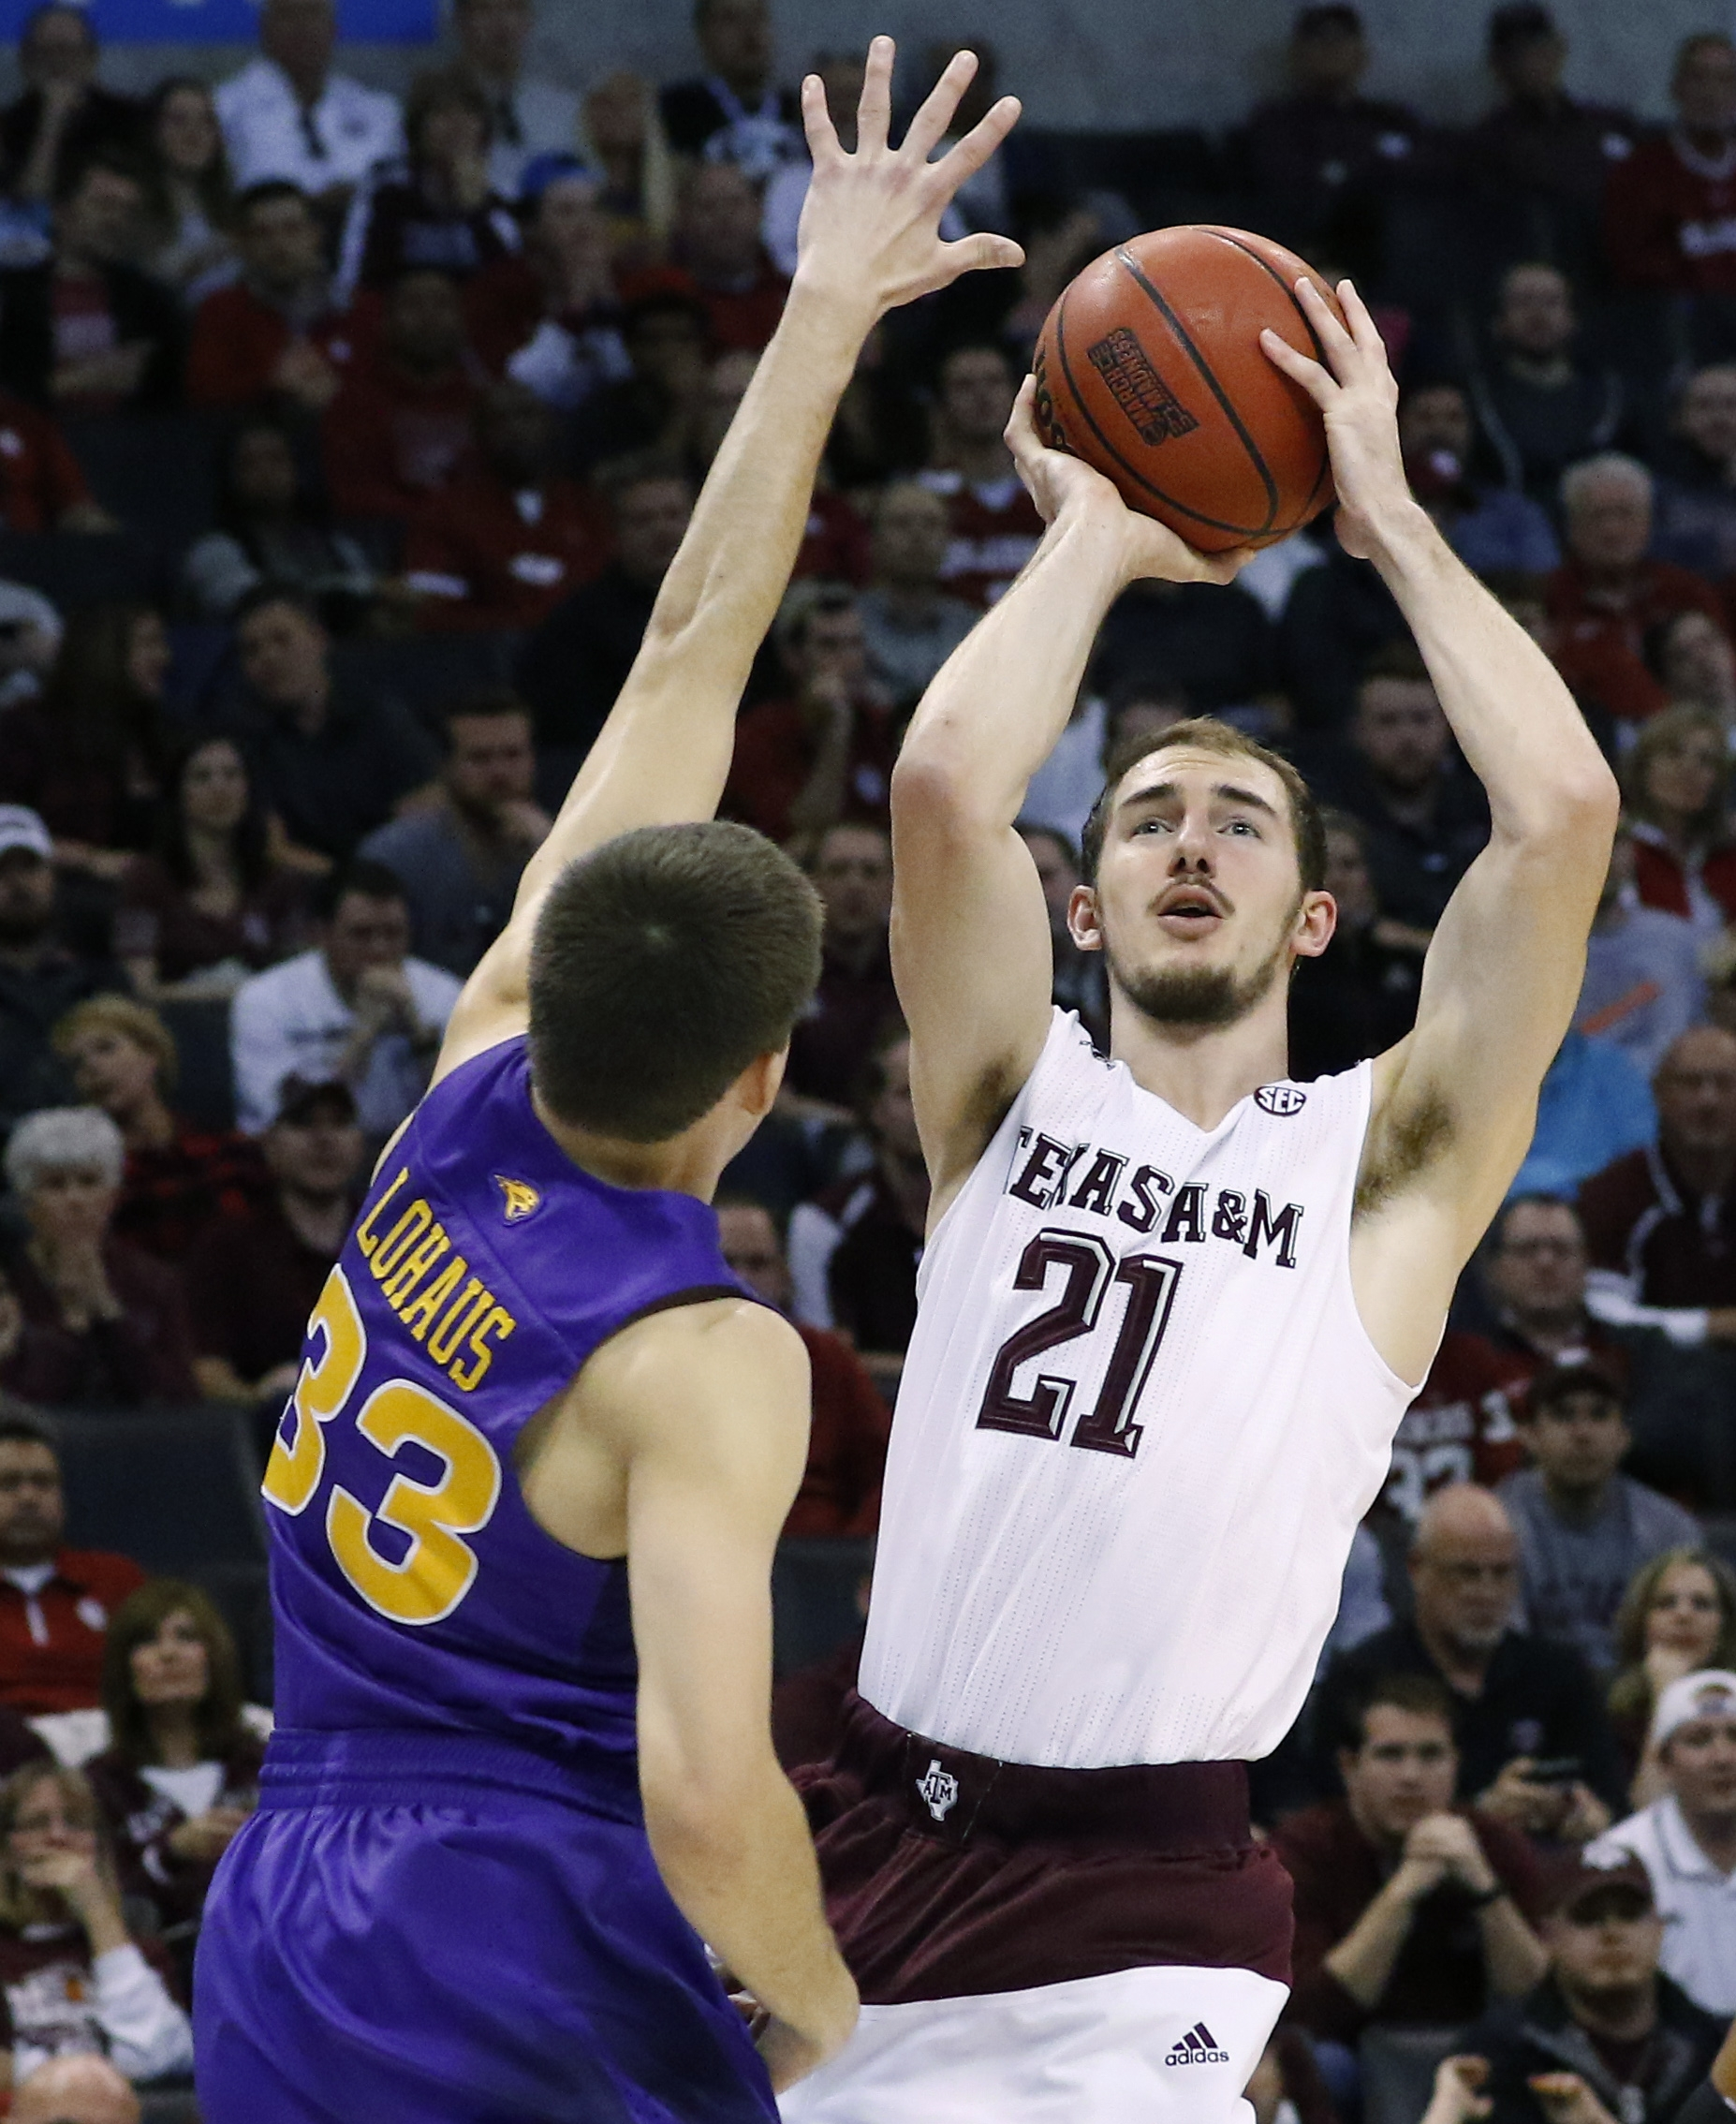 Texas A&M guard Alex Caruso (21) shoots over Northern Iowa guard Wyatt Lohaus (33) in the first half of a second-round men's college basketball game in the NCAA Tournament Sunday, March 20, 2016, in Oklahoma City. Oklahoma won 85-81. (AP Photo/Alonzo Adam